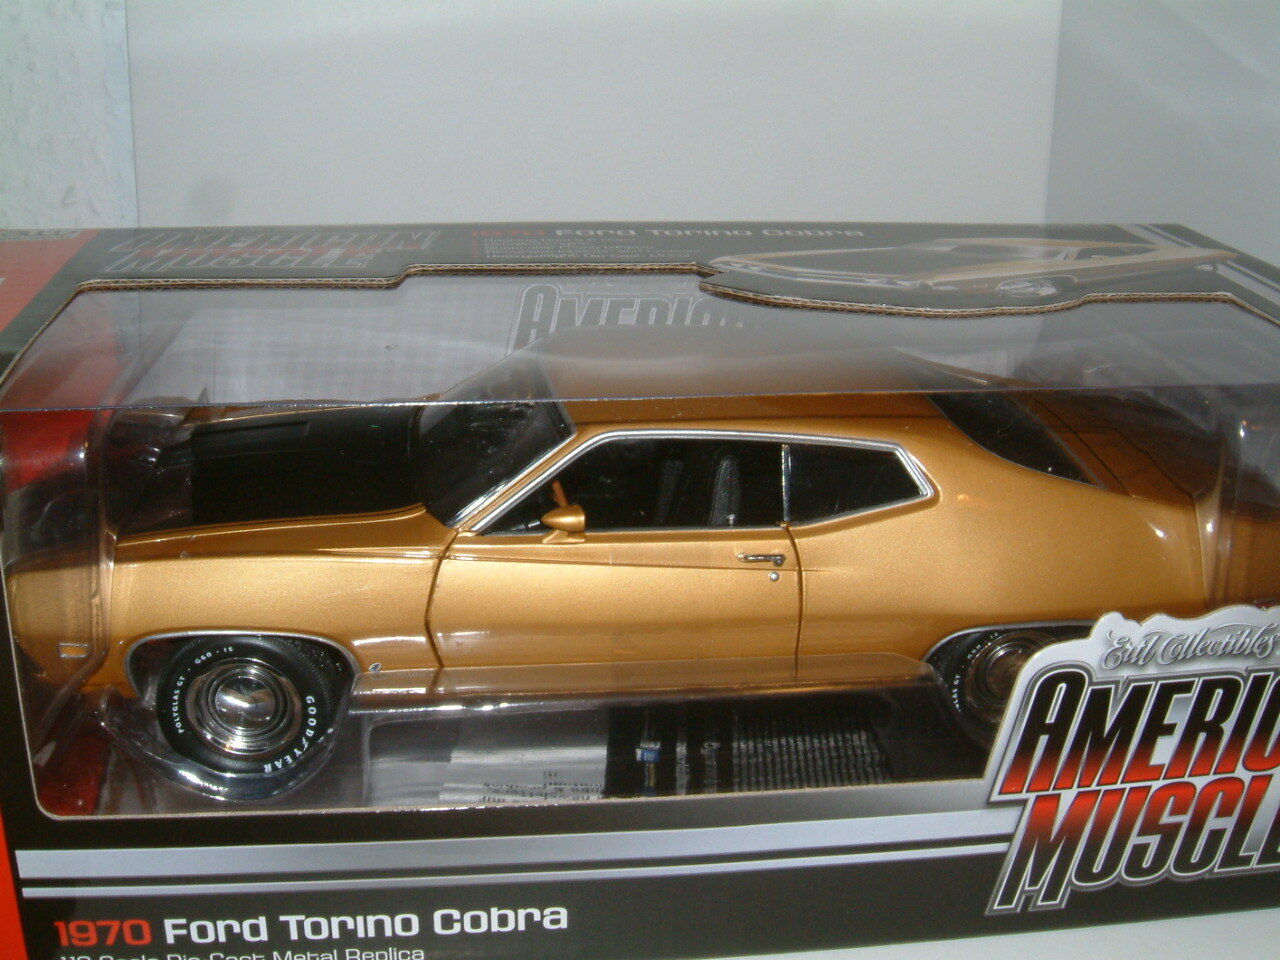 1 18 1970 FORD TORINO COBRA IN METALLIC gold, AUTOWORLD